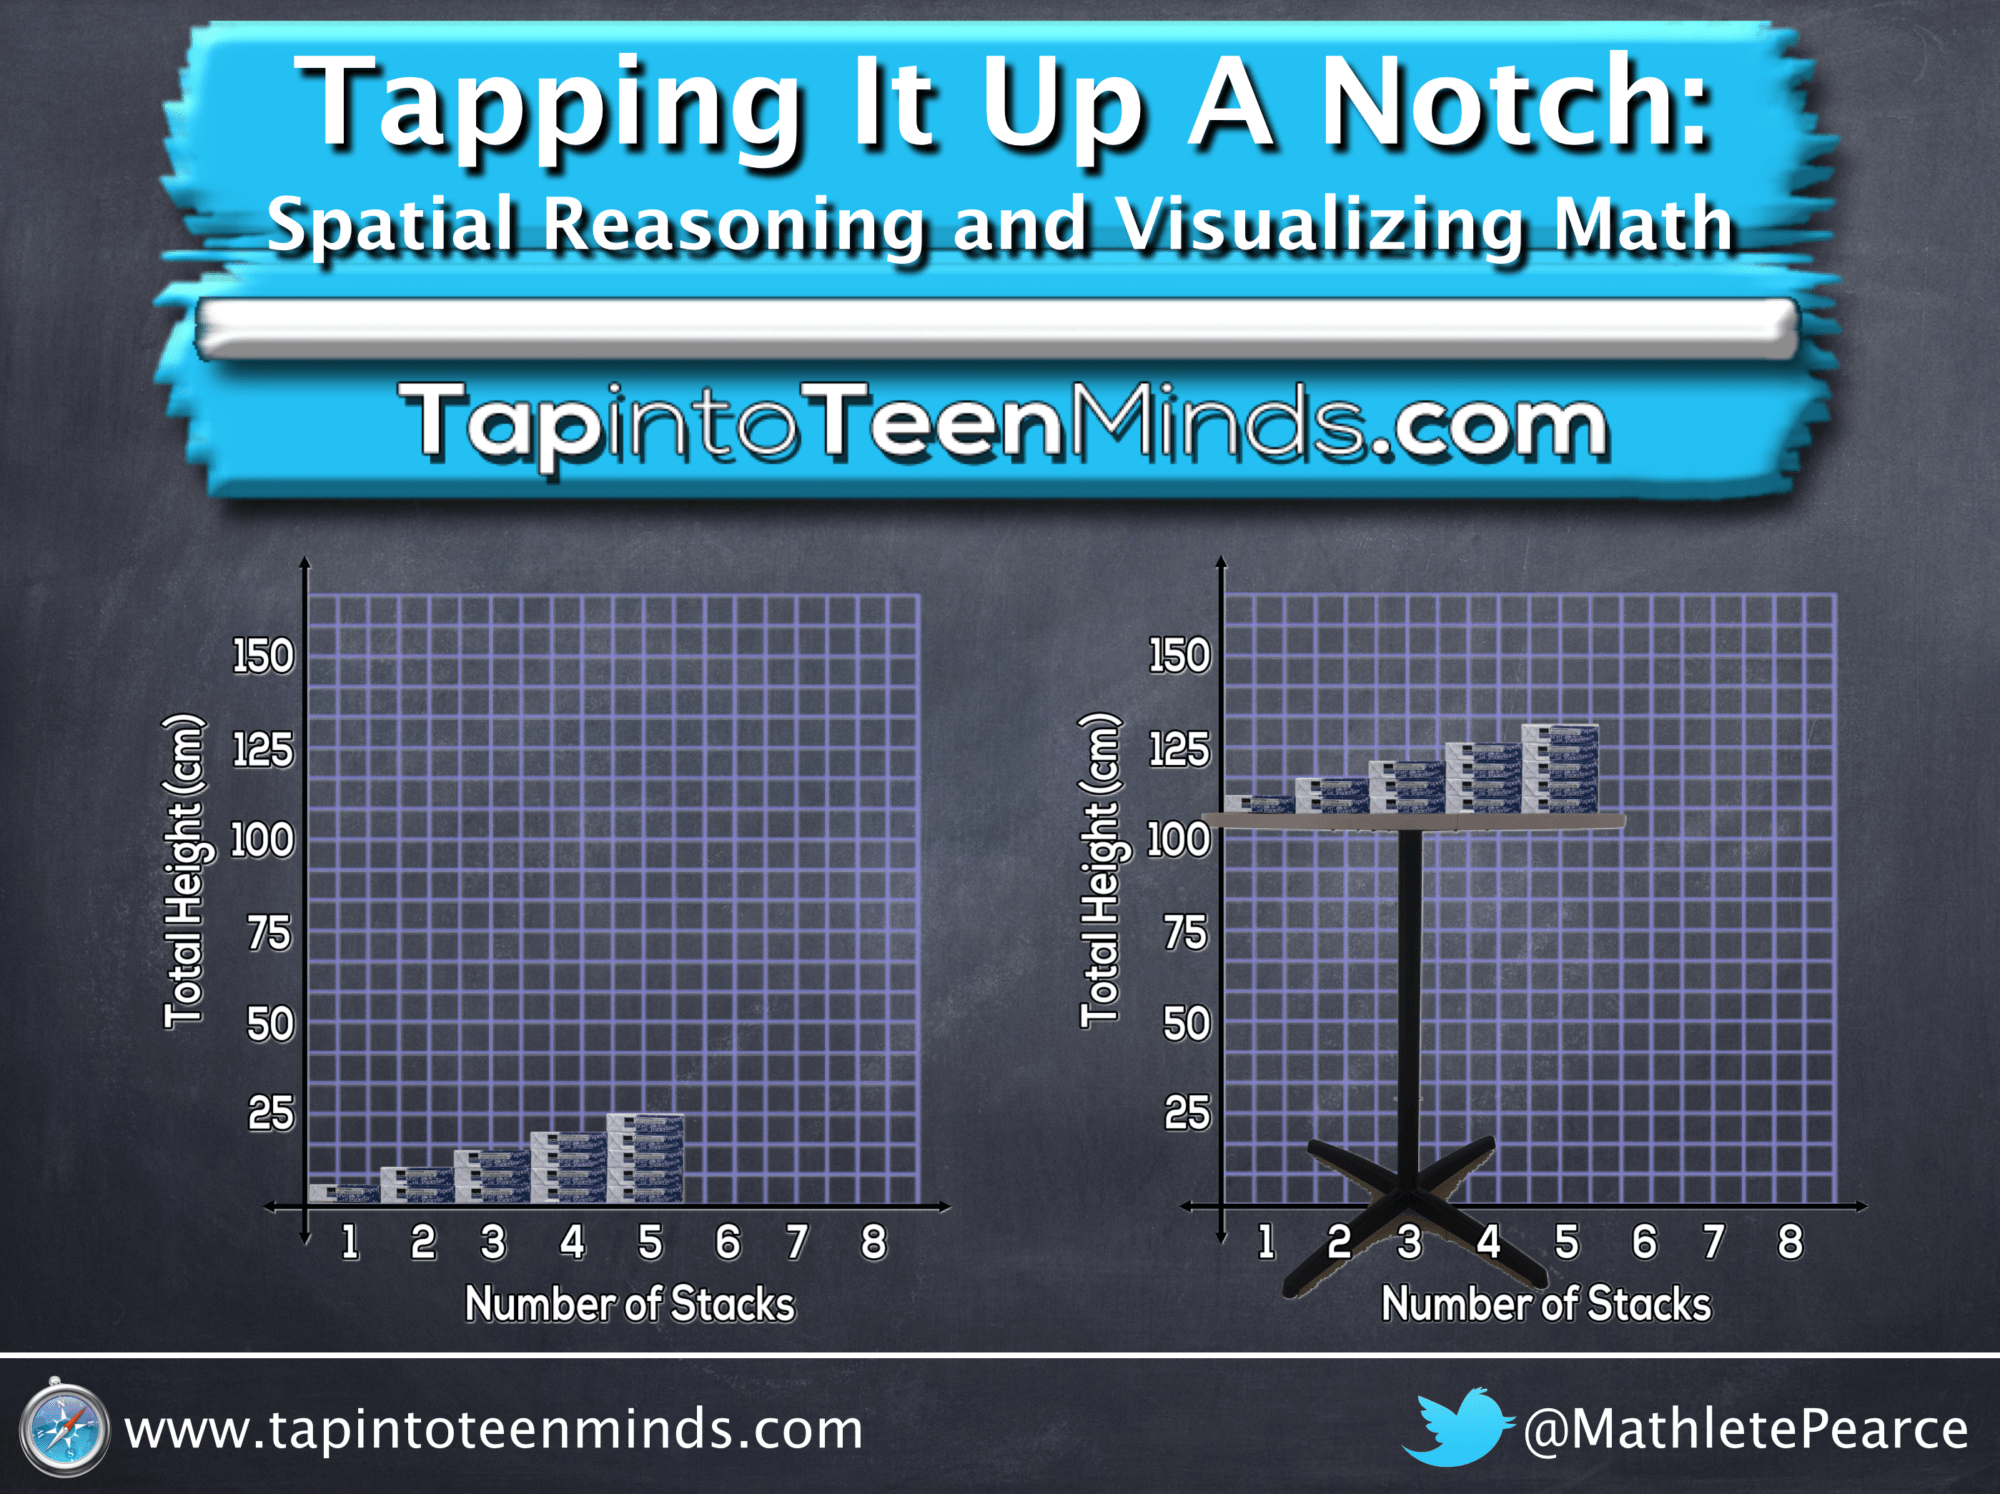 Tapping It Up A Notch: Spatial Reasoning and Visualizing Math